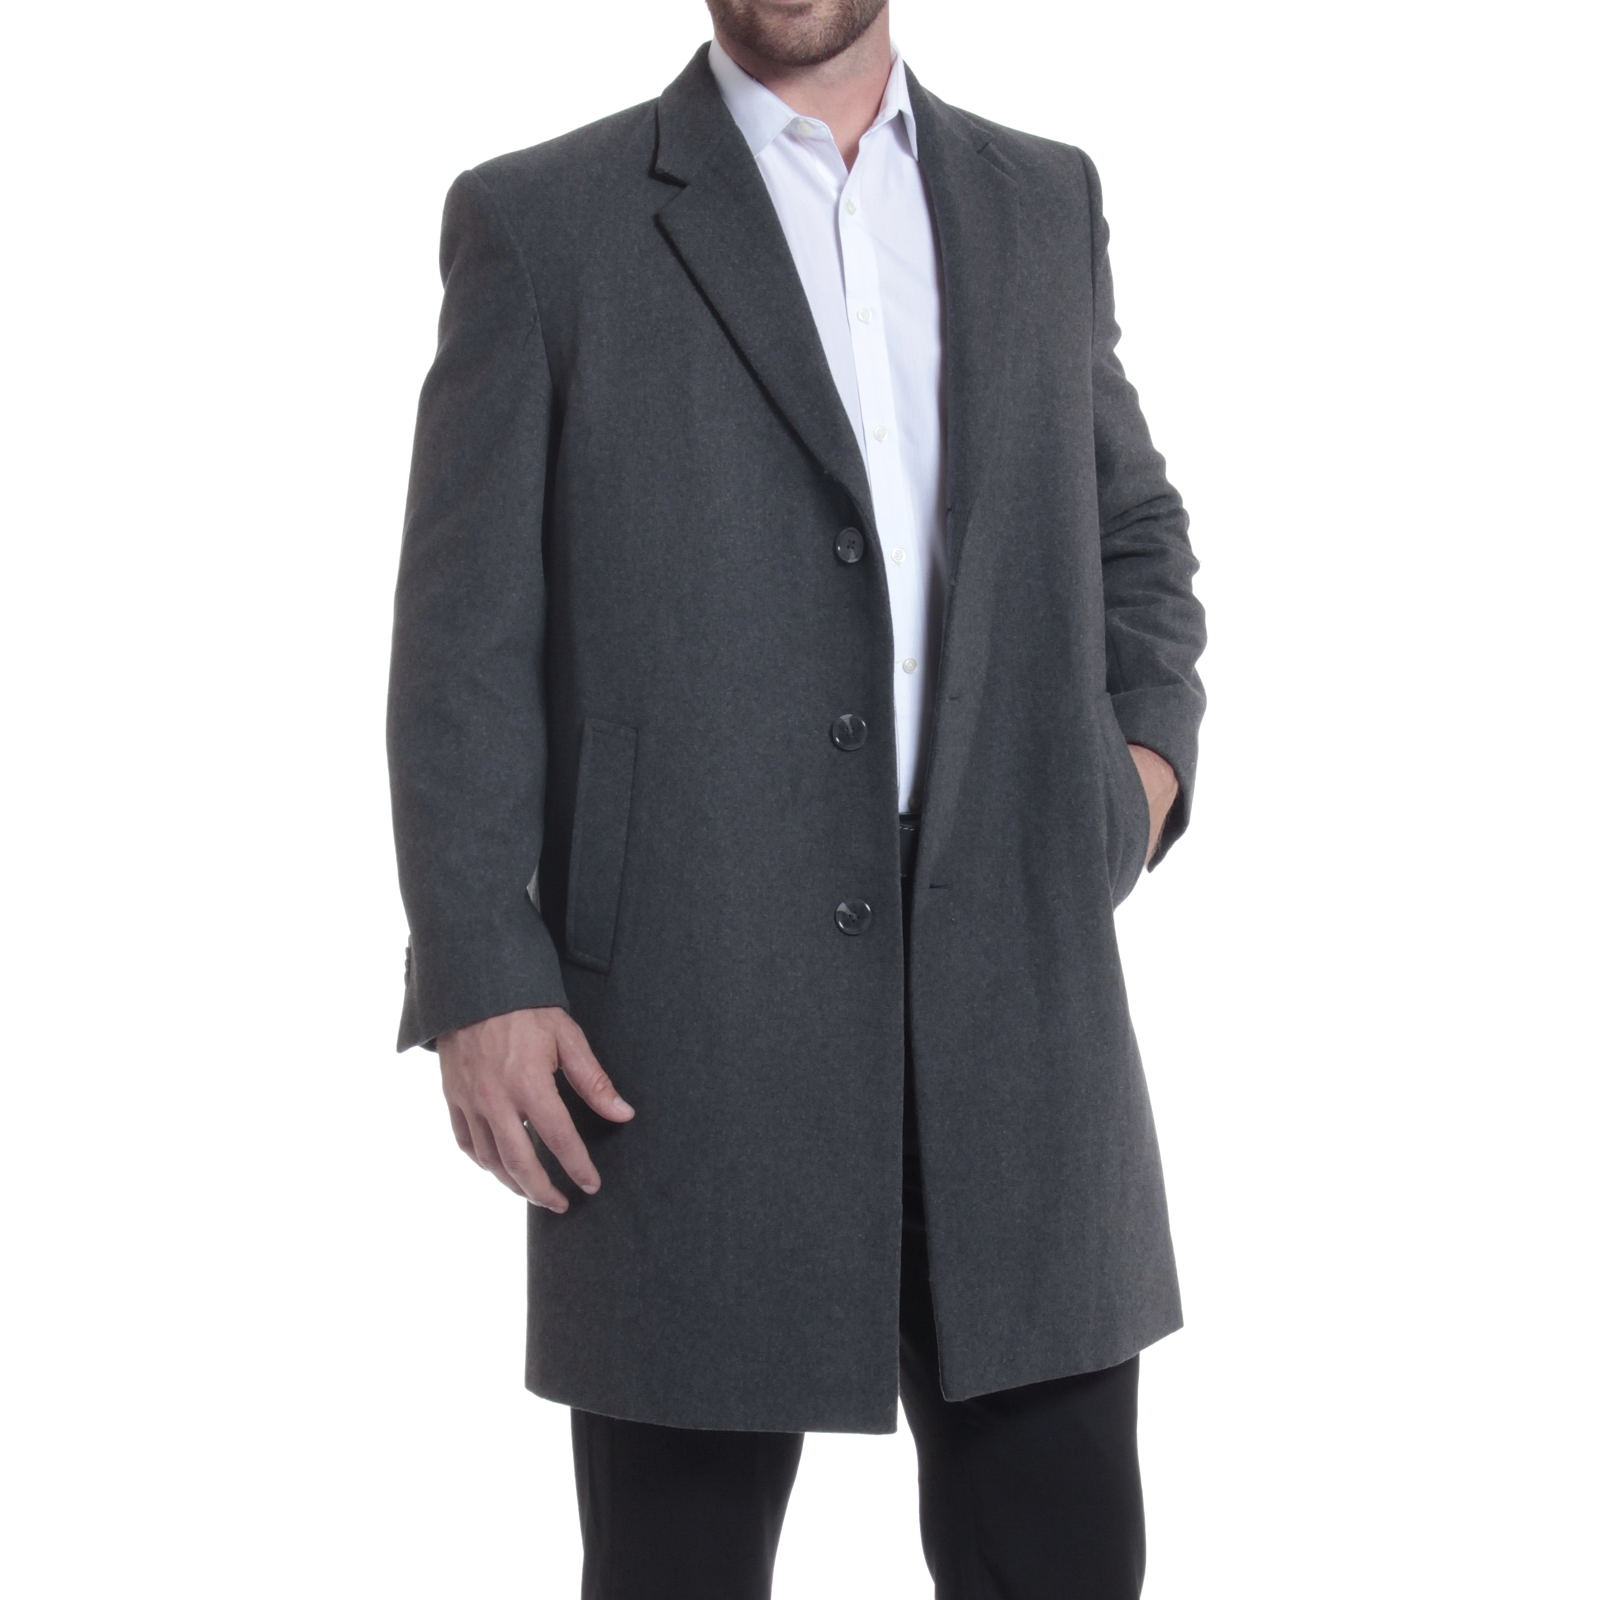 Alpine Swiss Luke Wool Mens Tailored 37 Walker Jacket Top Coat Car ...